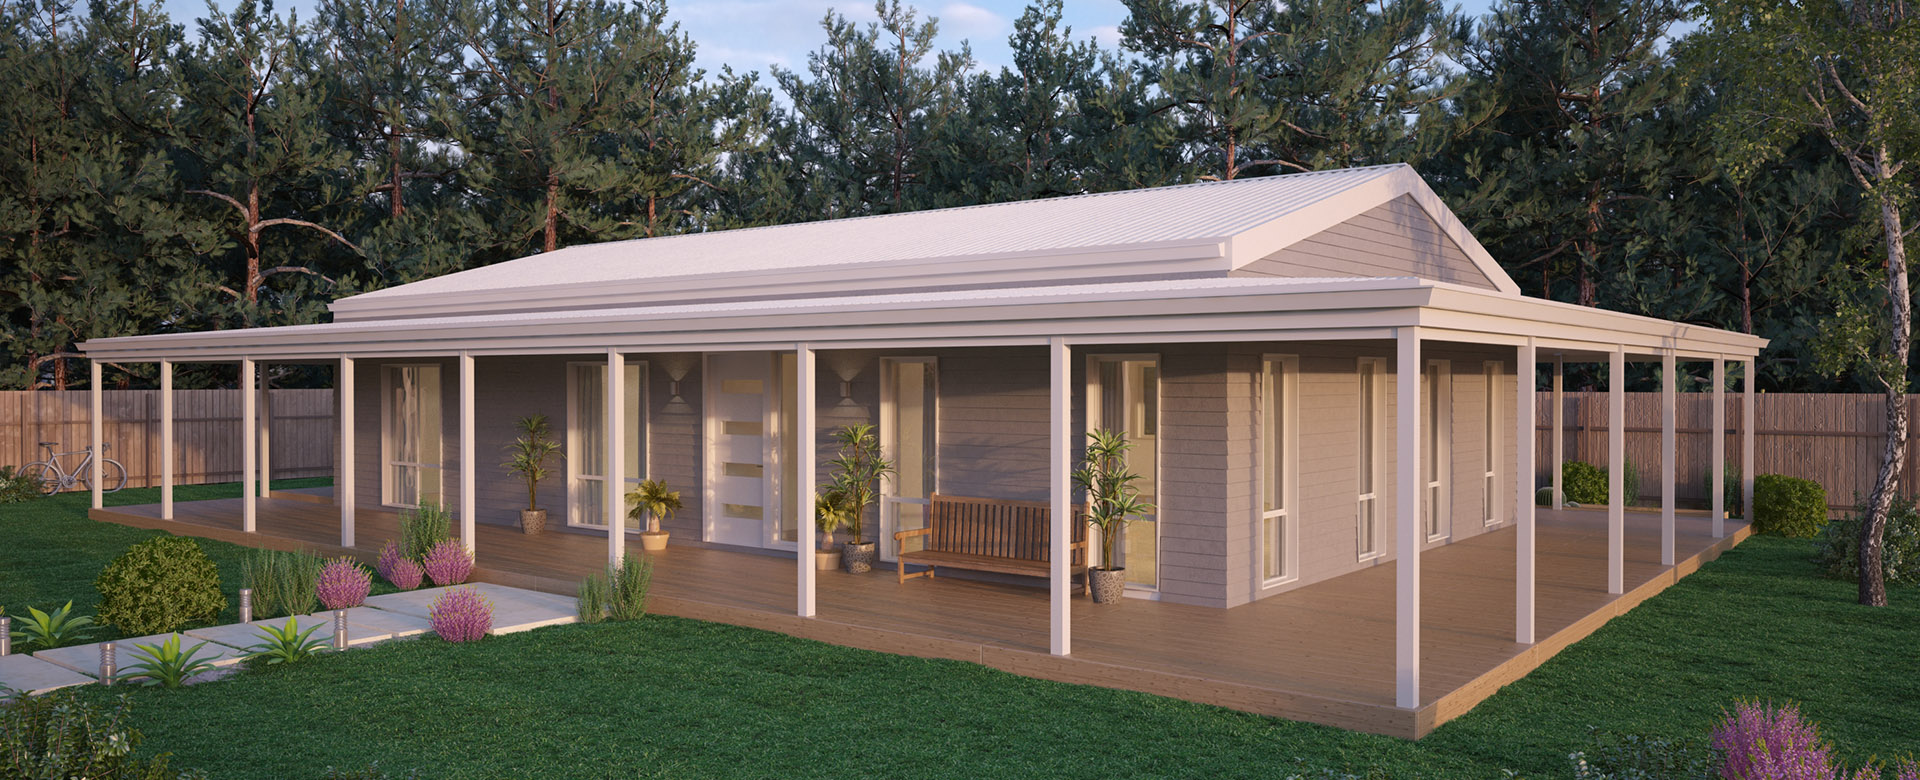 Design Your Own Kit Home Perth Modular Homes Transportable Homes Prefab Homes Perth